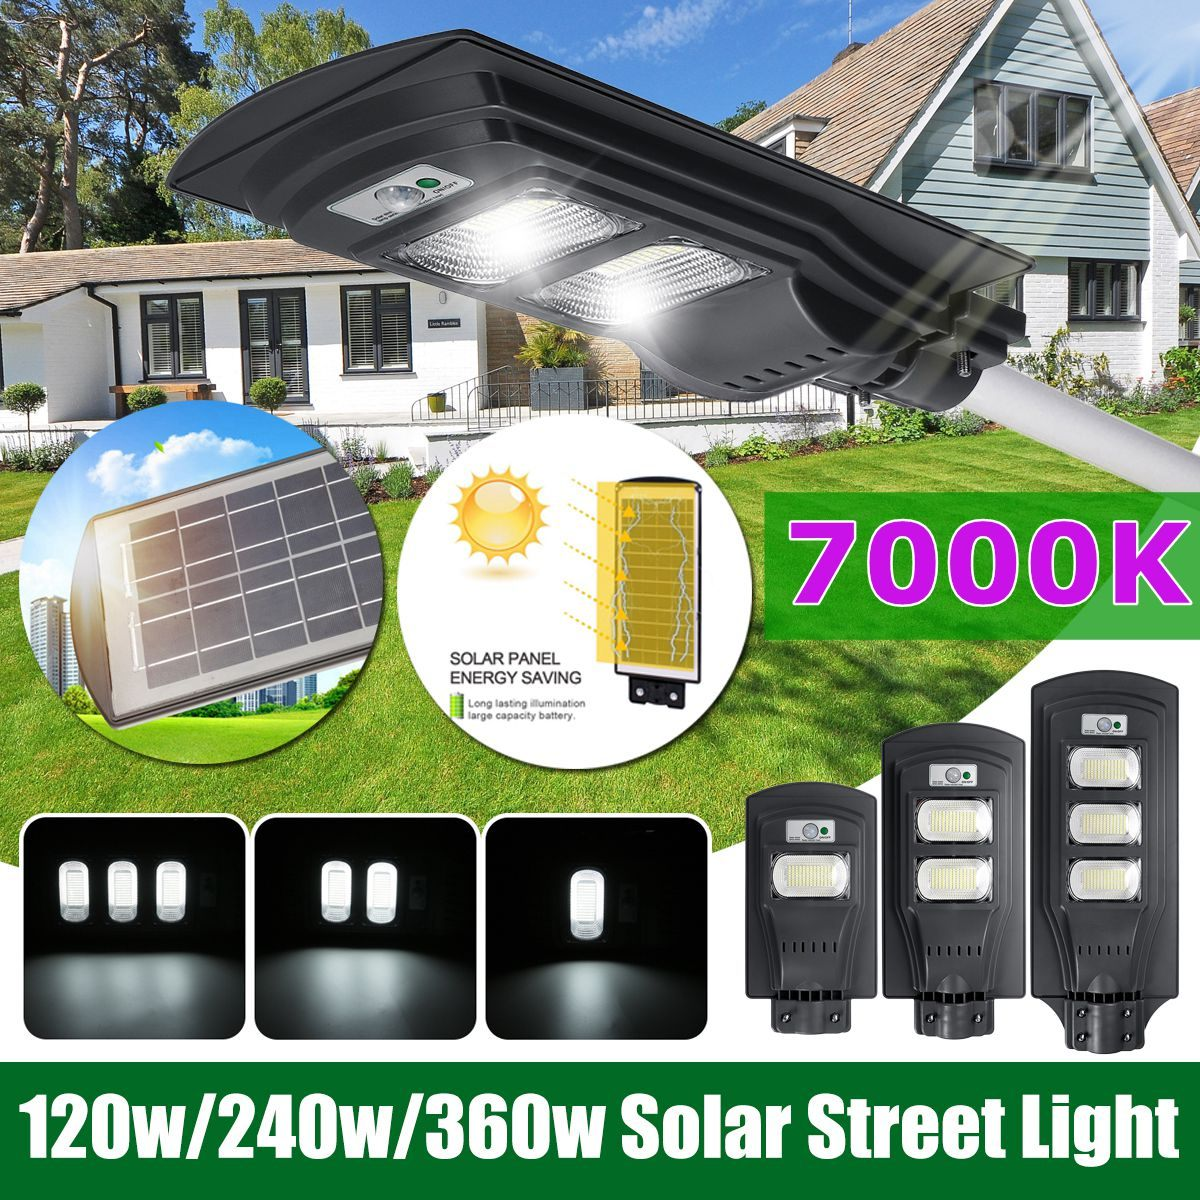 120W117LED/240W 234 LED/360W 351LED Solar Street Light Dusk To Dawn Outdoor Security Light 7000K IP65 Waterproof